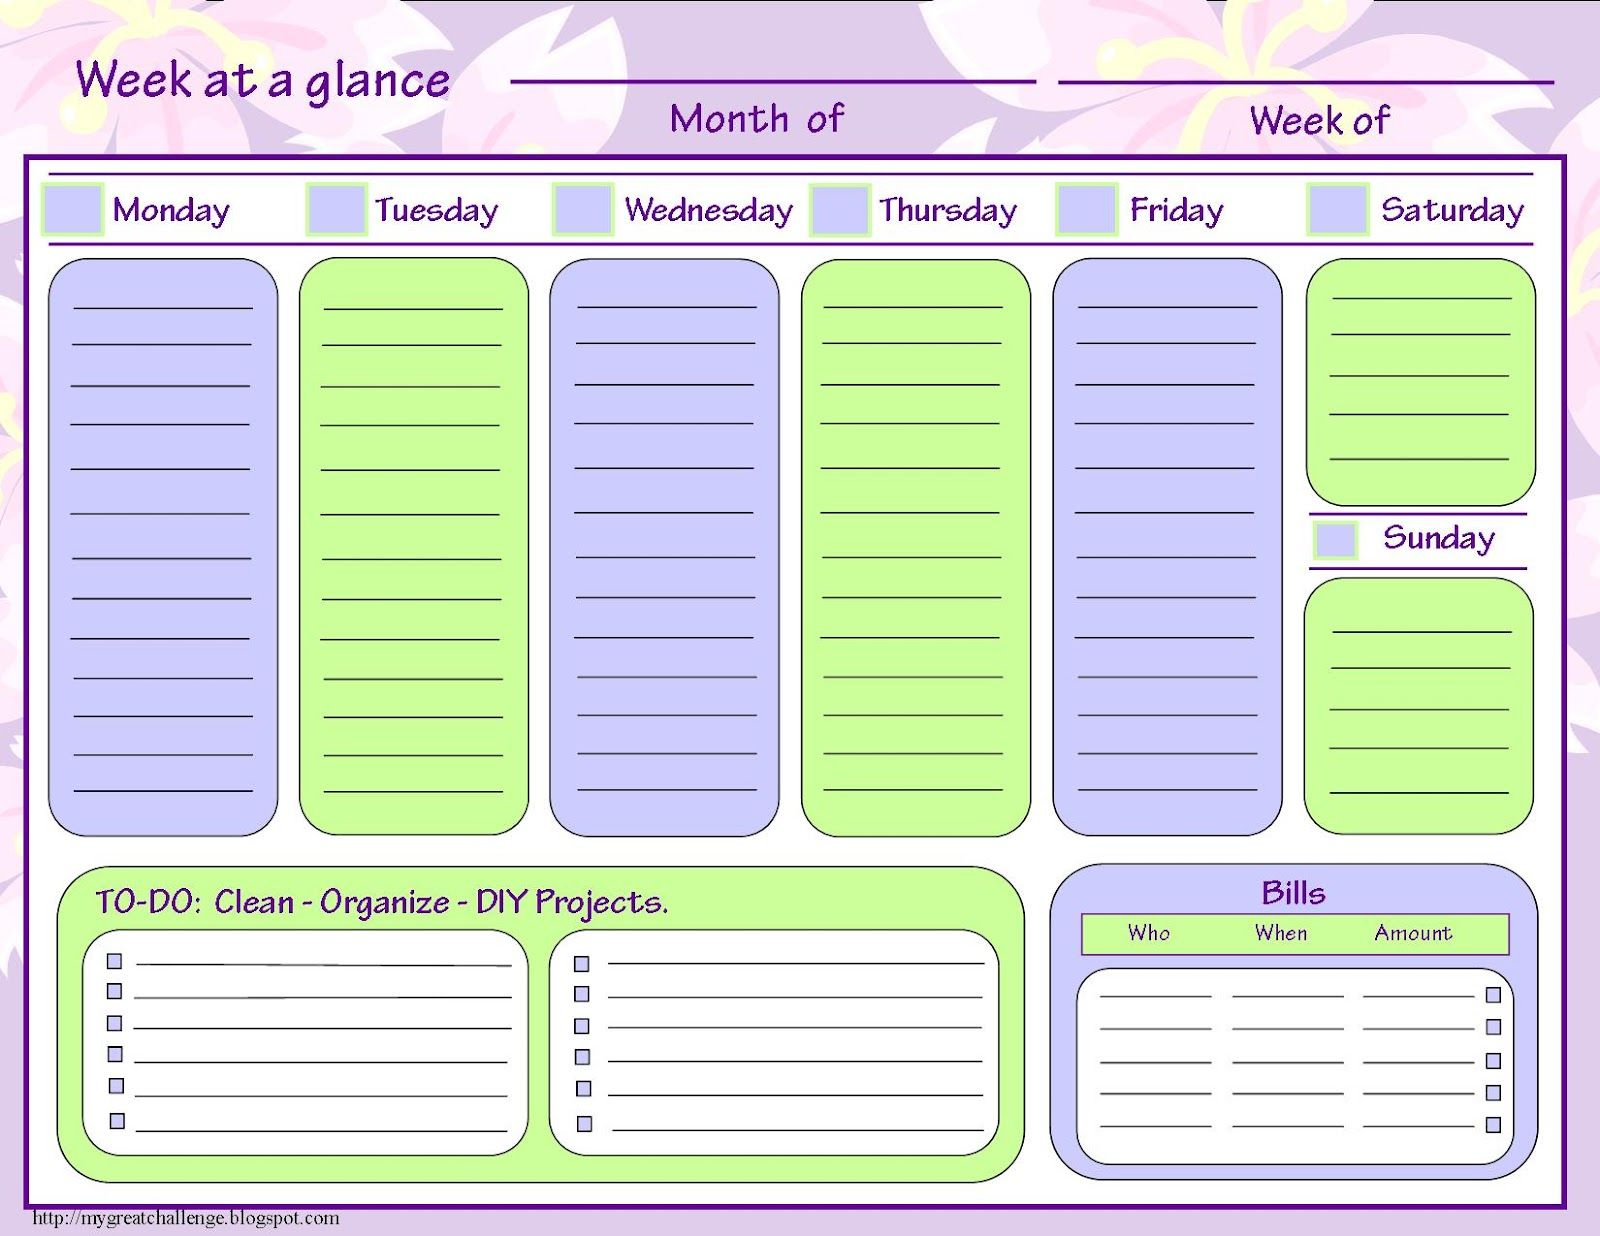 Free Dowloadable Week At A Glance Template With To Do List